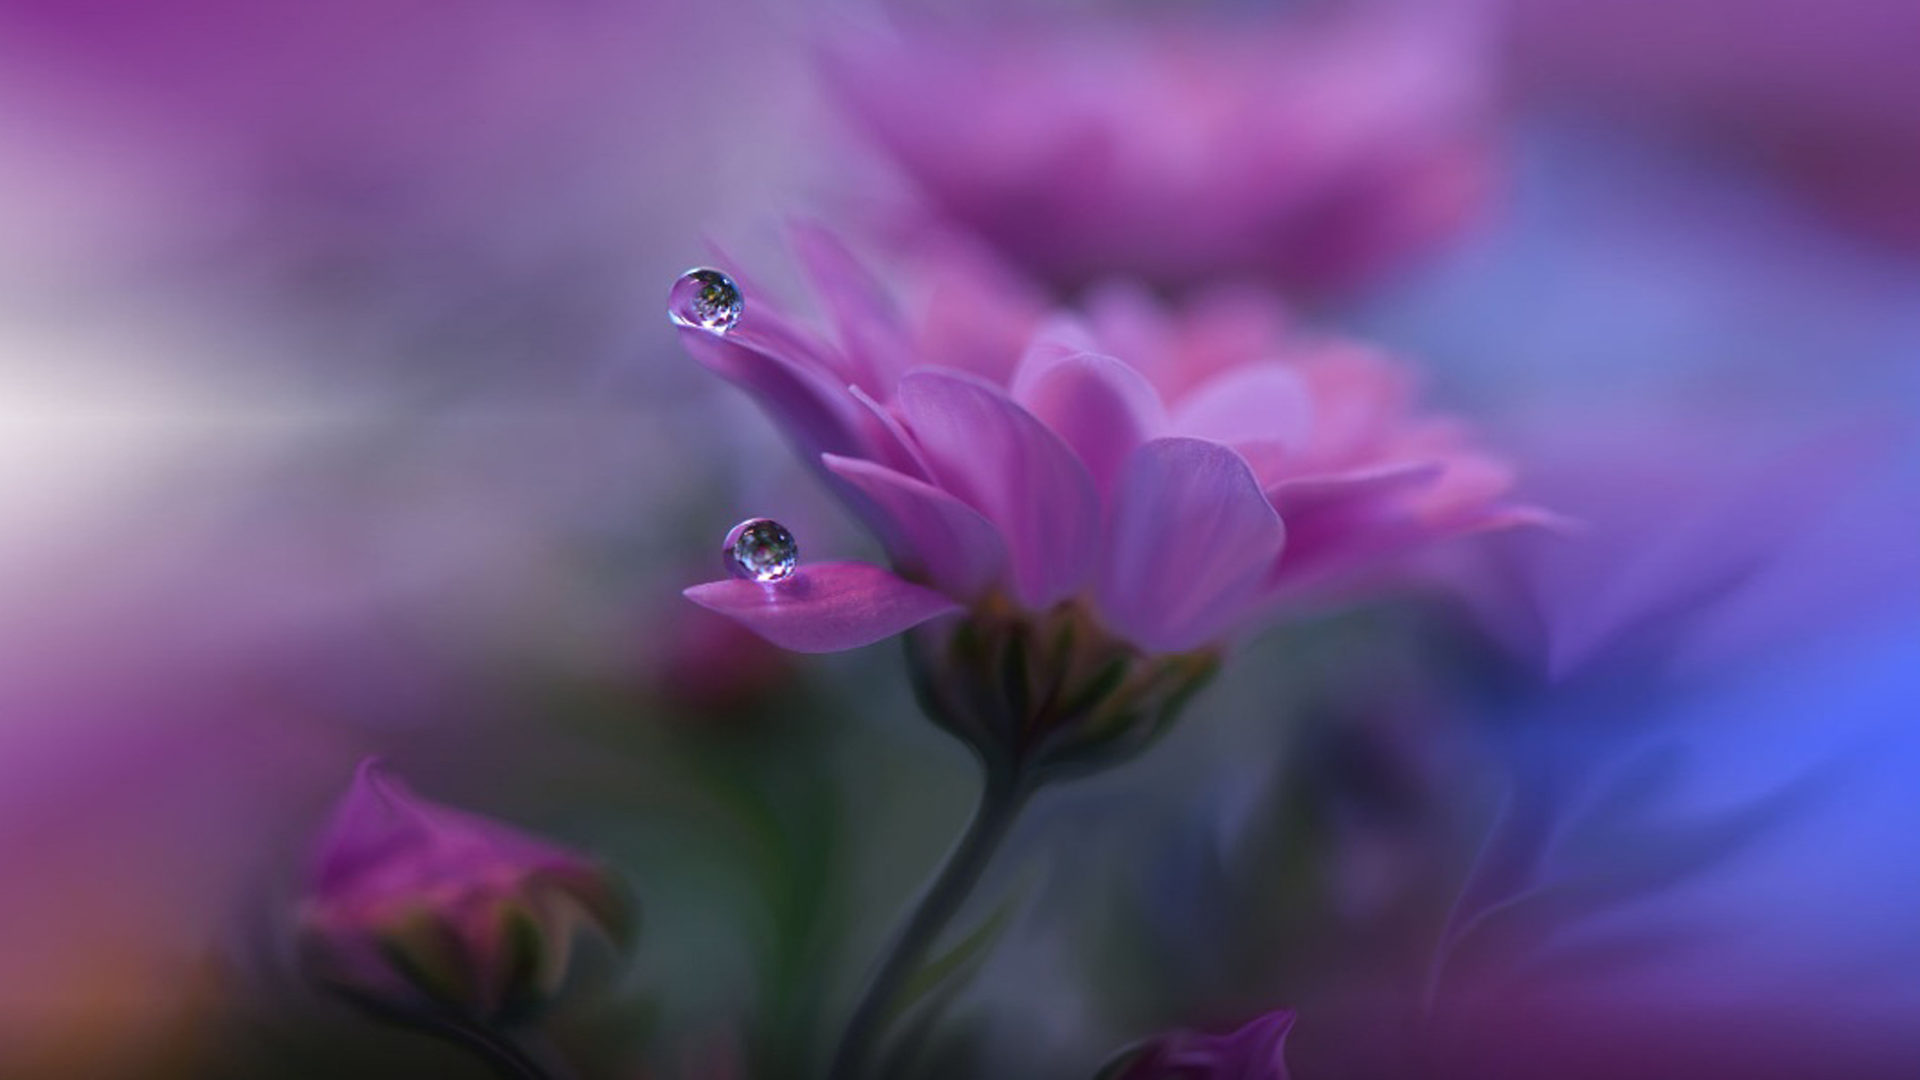 Cute Pink Wallpaper 1980 Purple Flowers Drops Water Desktop Backgrounds 1920x1200